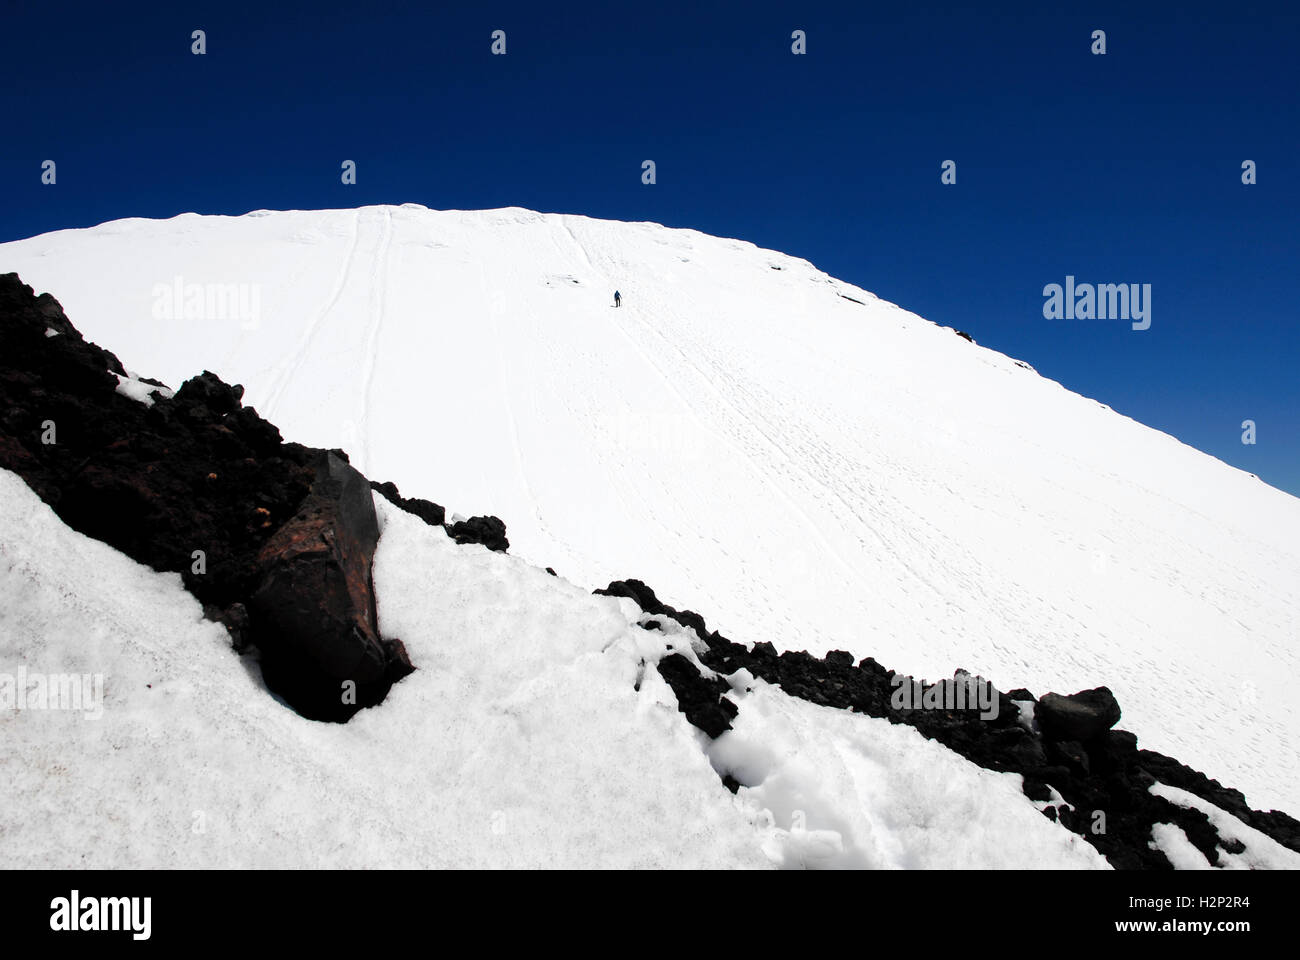 A lone hiker ascends the snow covered summit of Mount Ngauruhoe in Tongariro National Park, New Zealand. Stock Photo